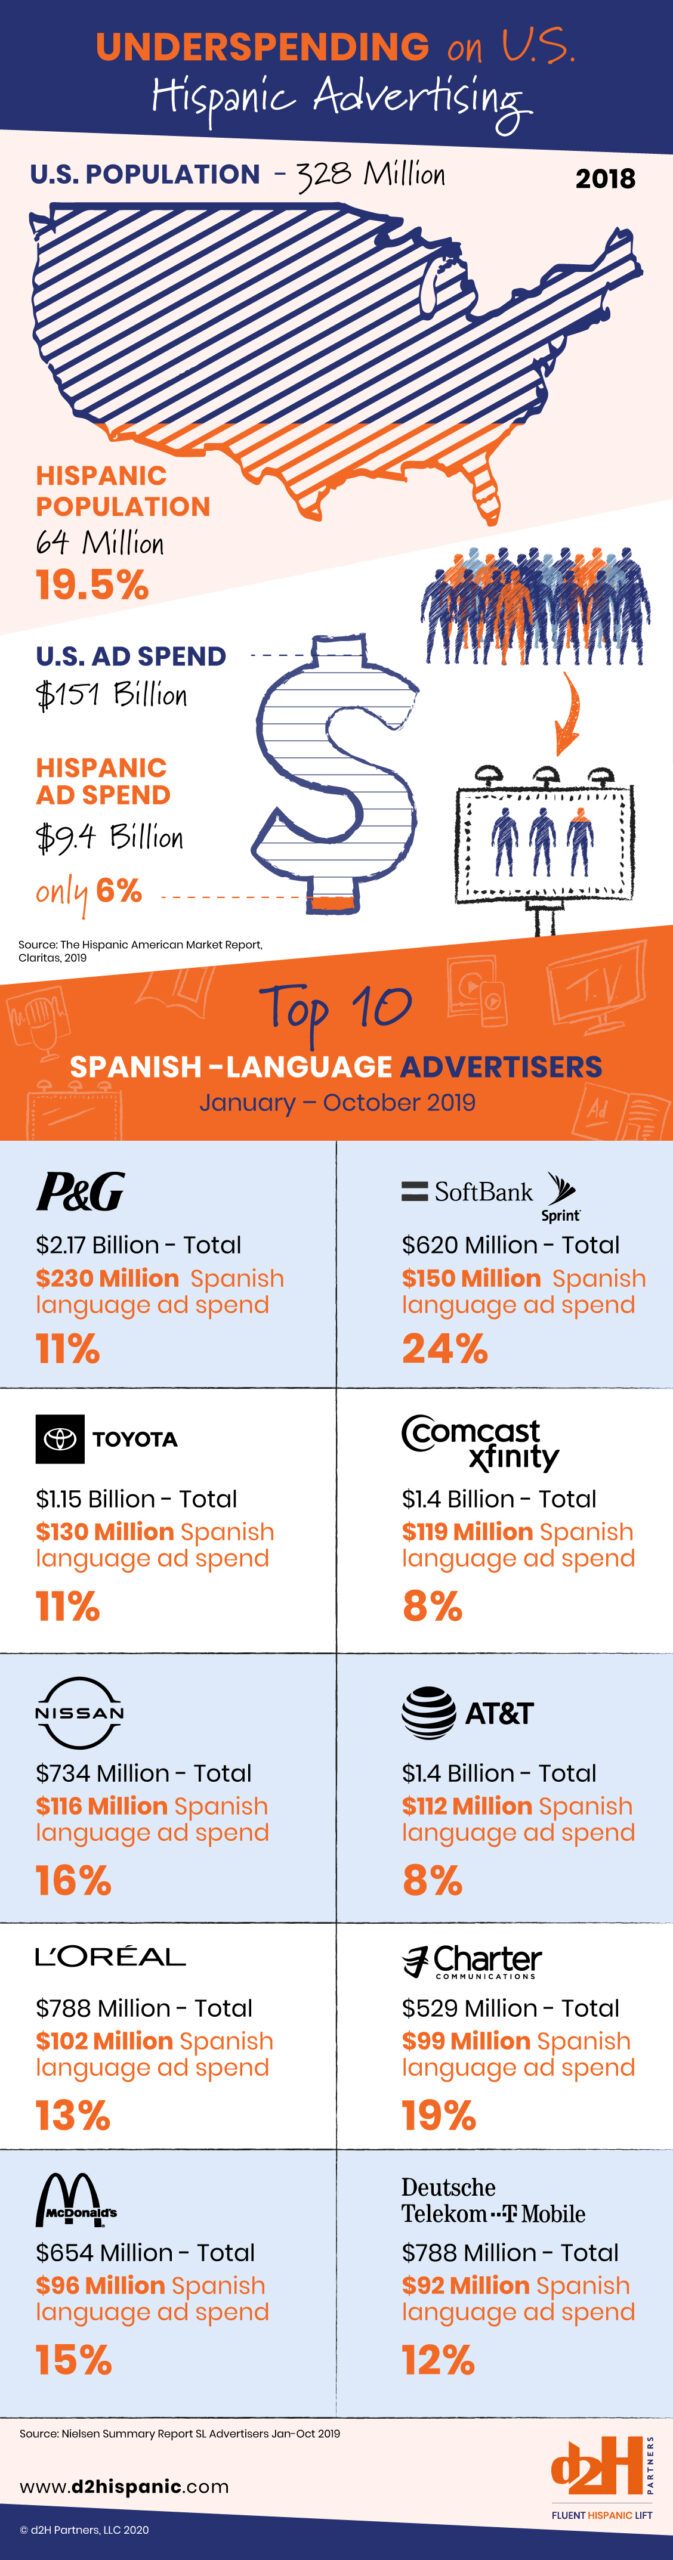 Underspending on US Hispanic Advertising